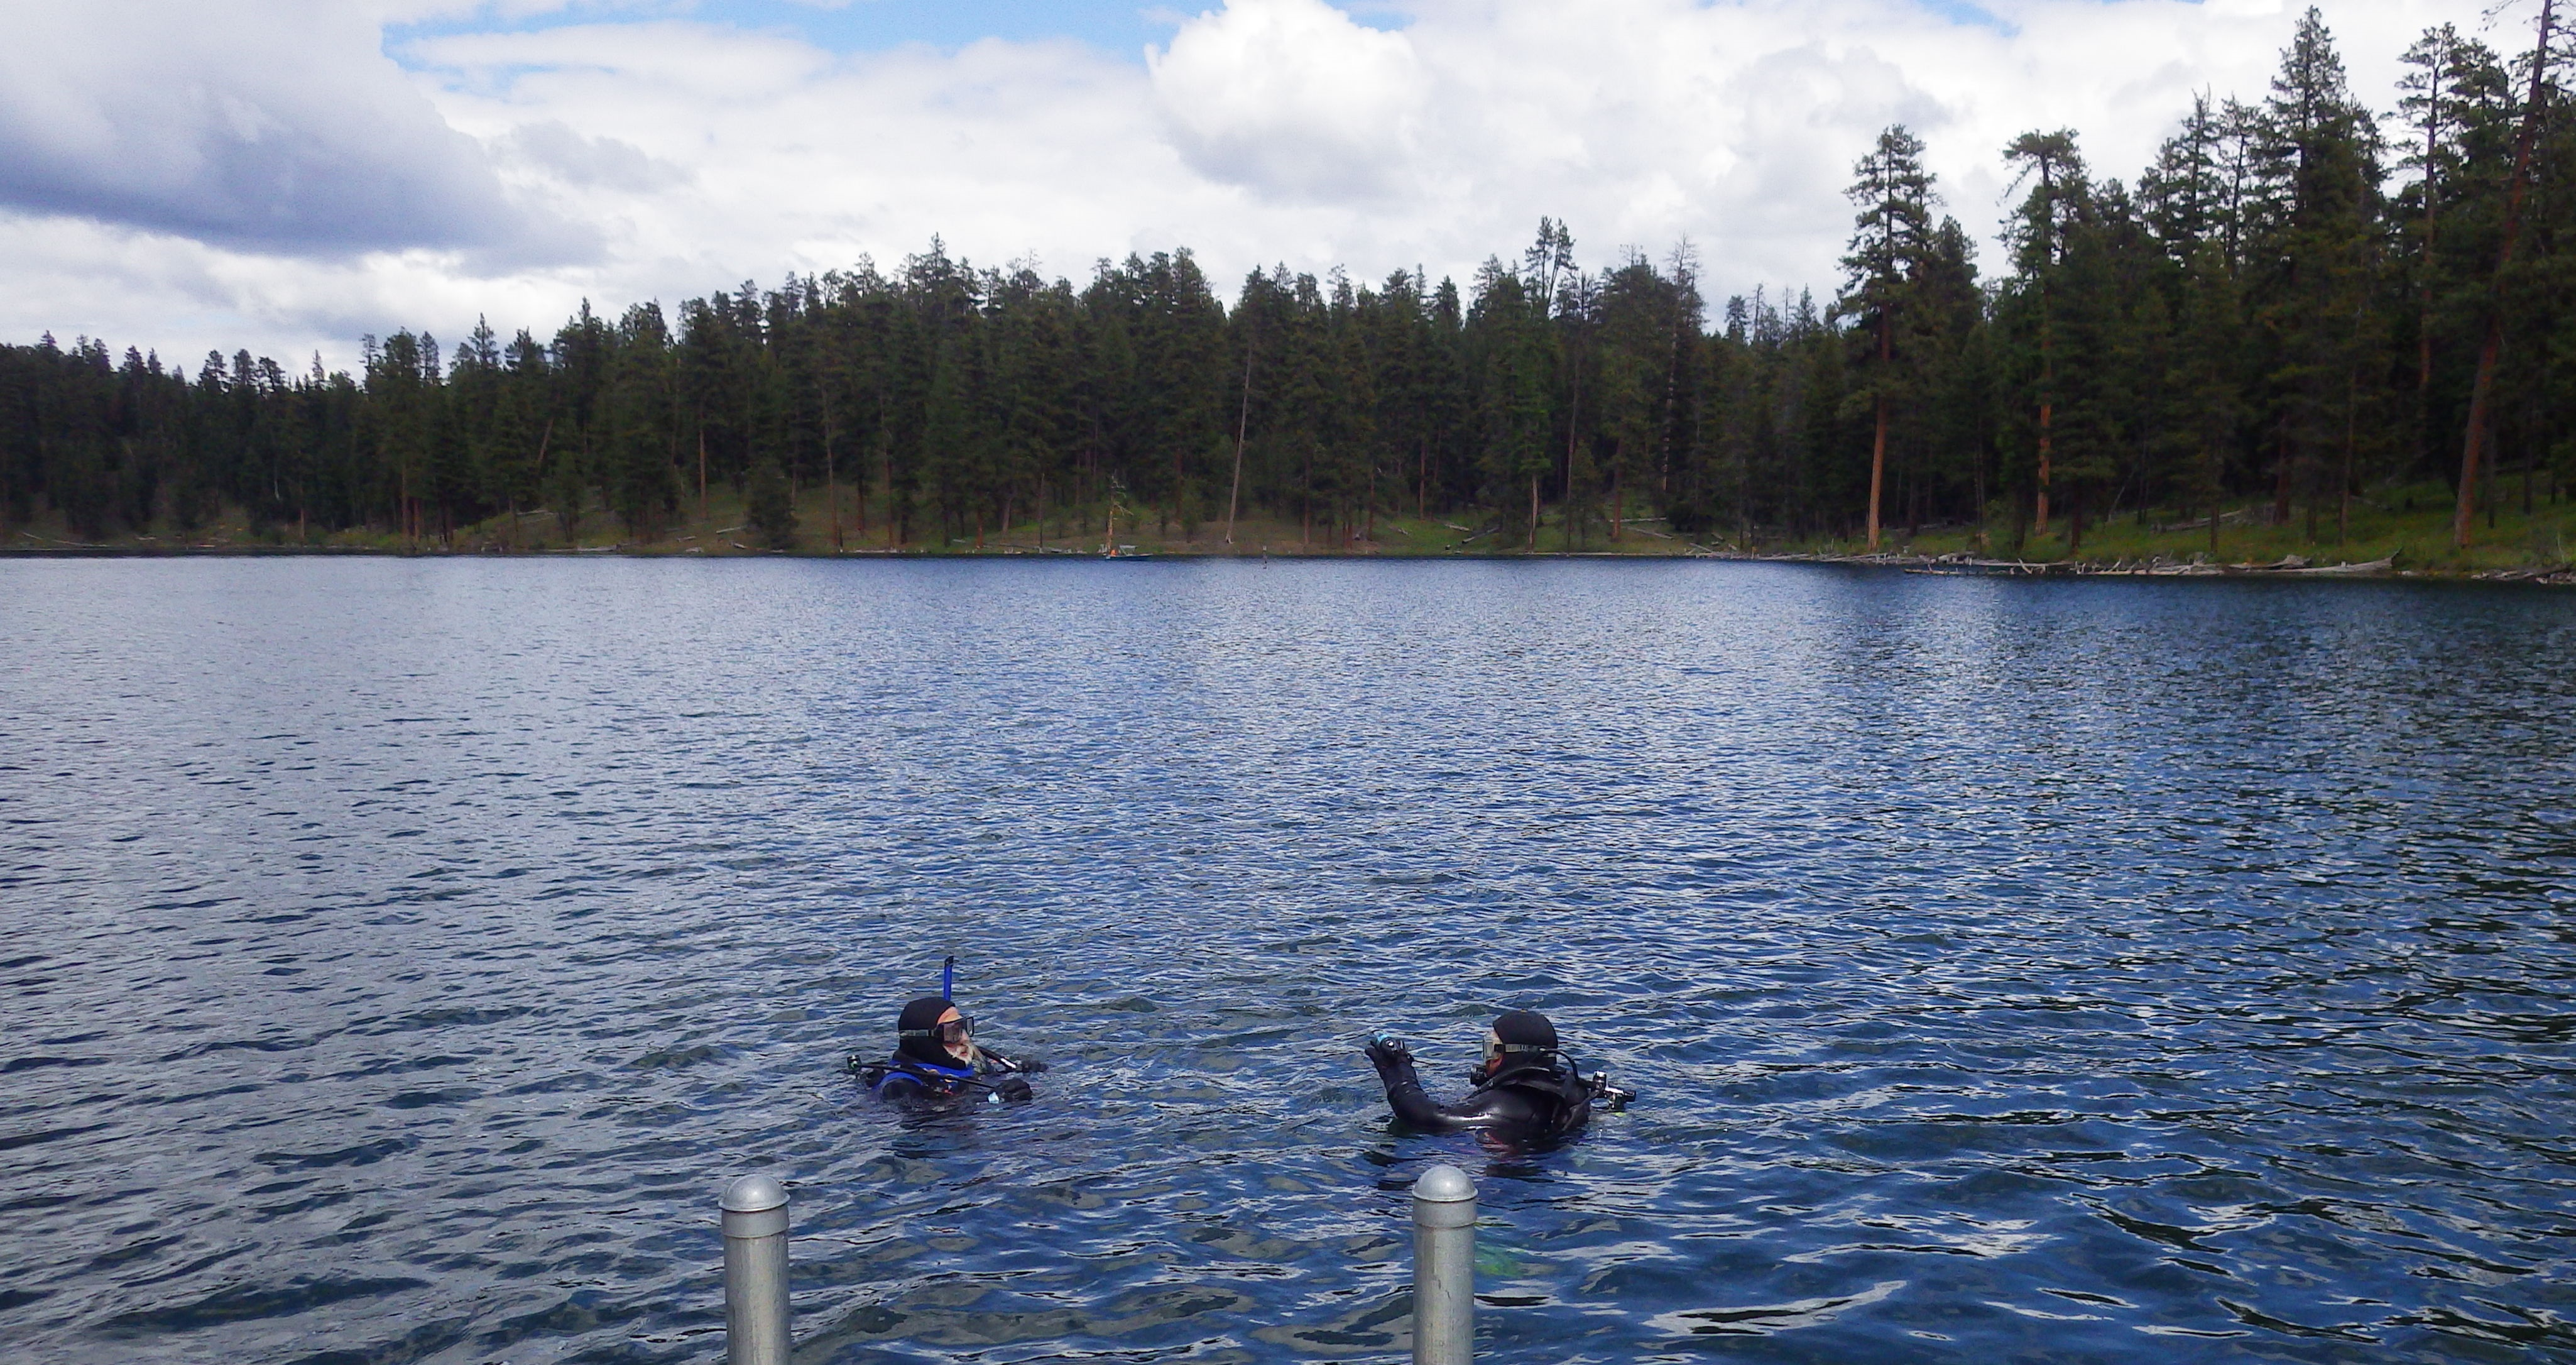 Professinal Divers inspect underwater forest in Magone Lake